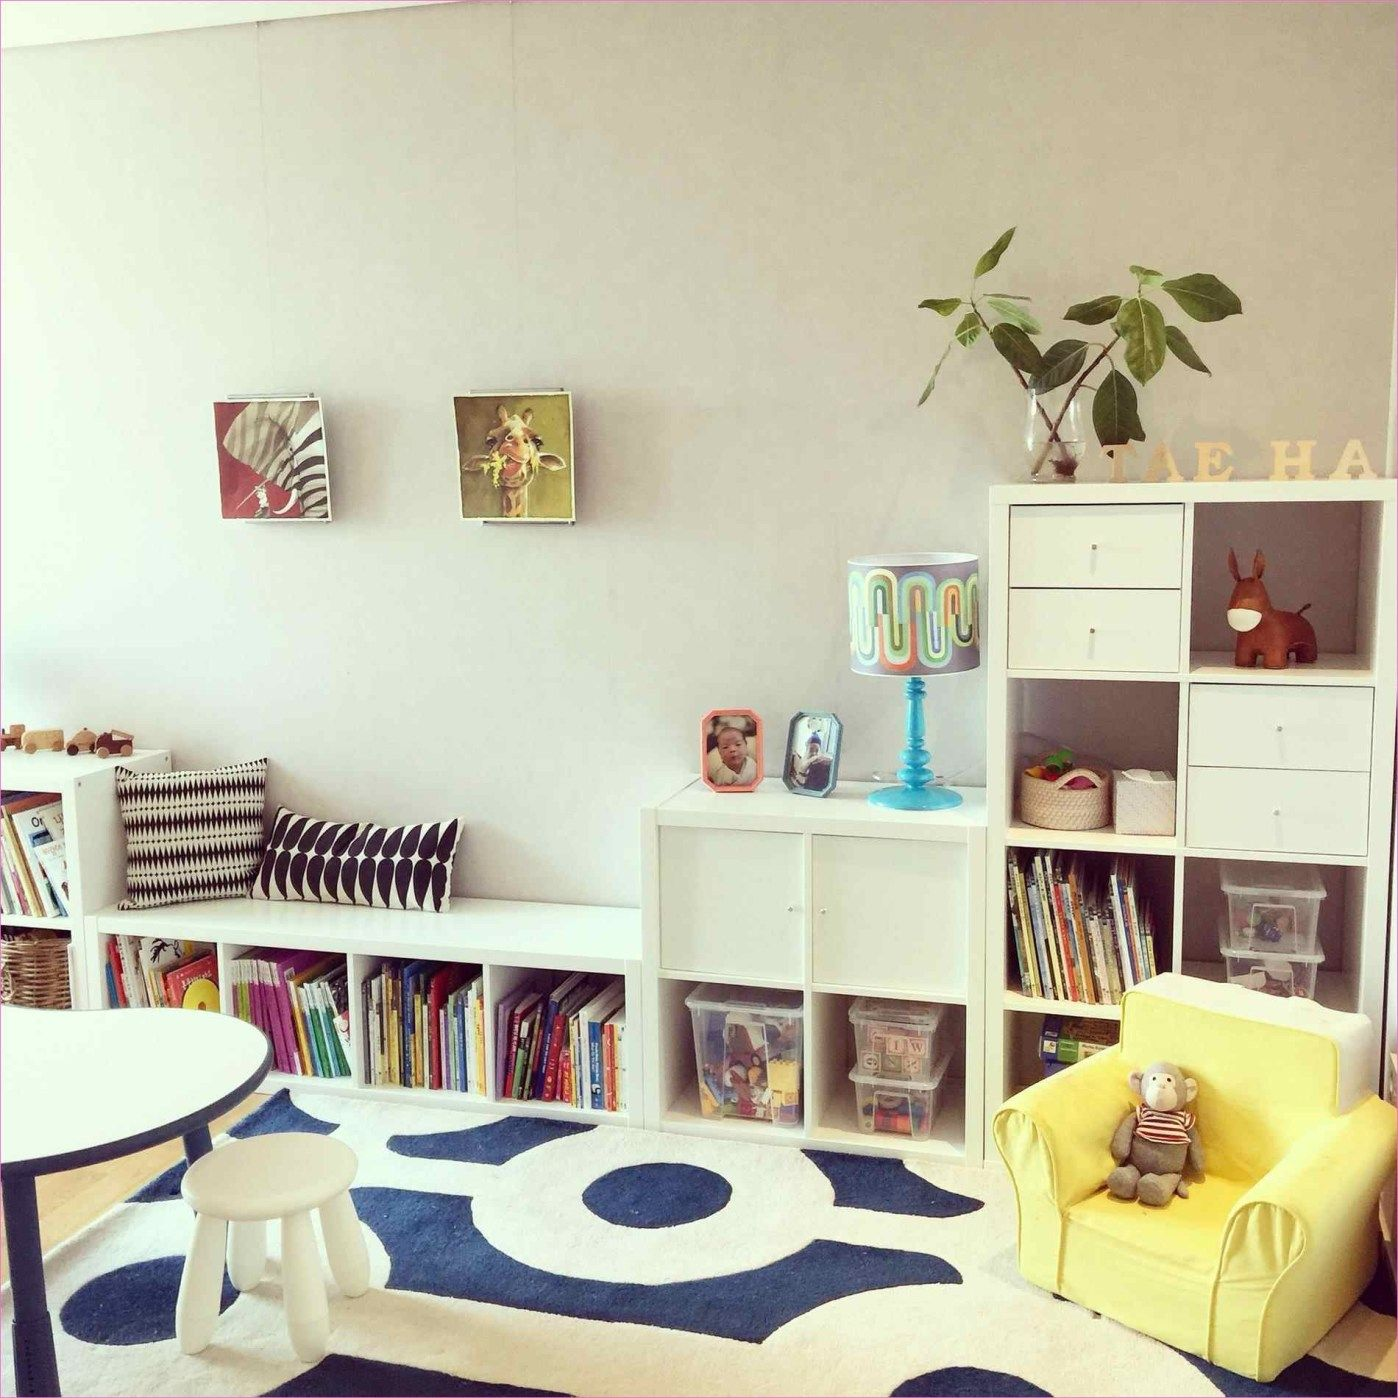 52 Inexpensive IKEA Craft for Kids Room Ideas images